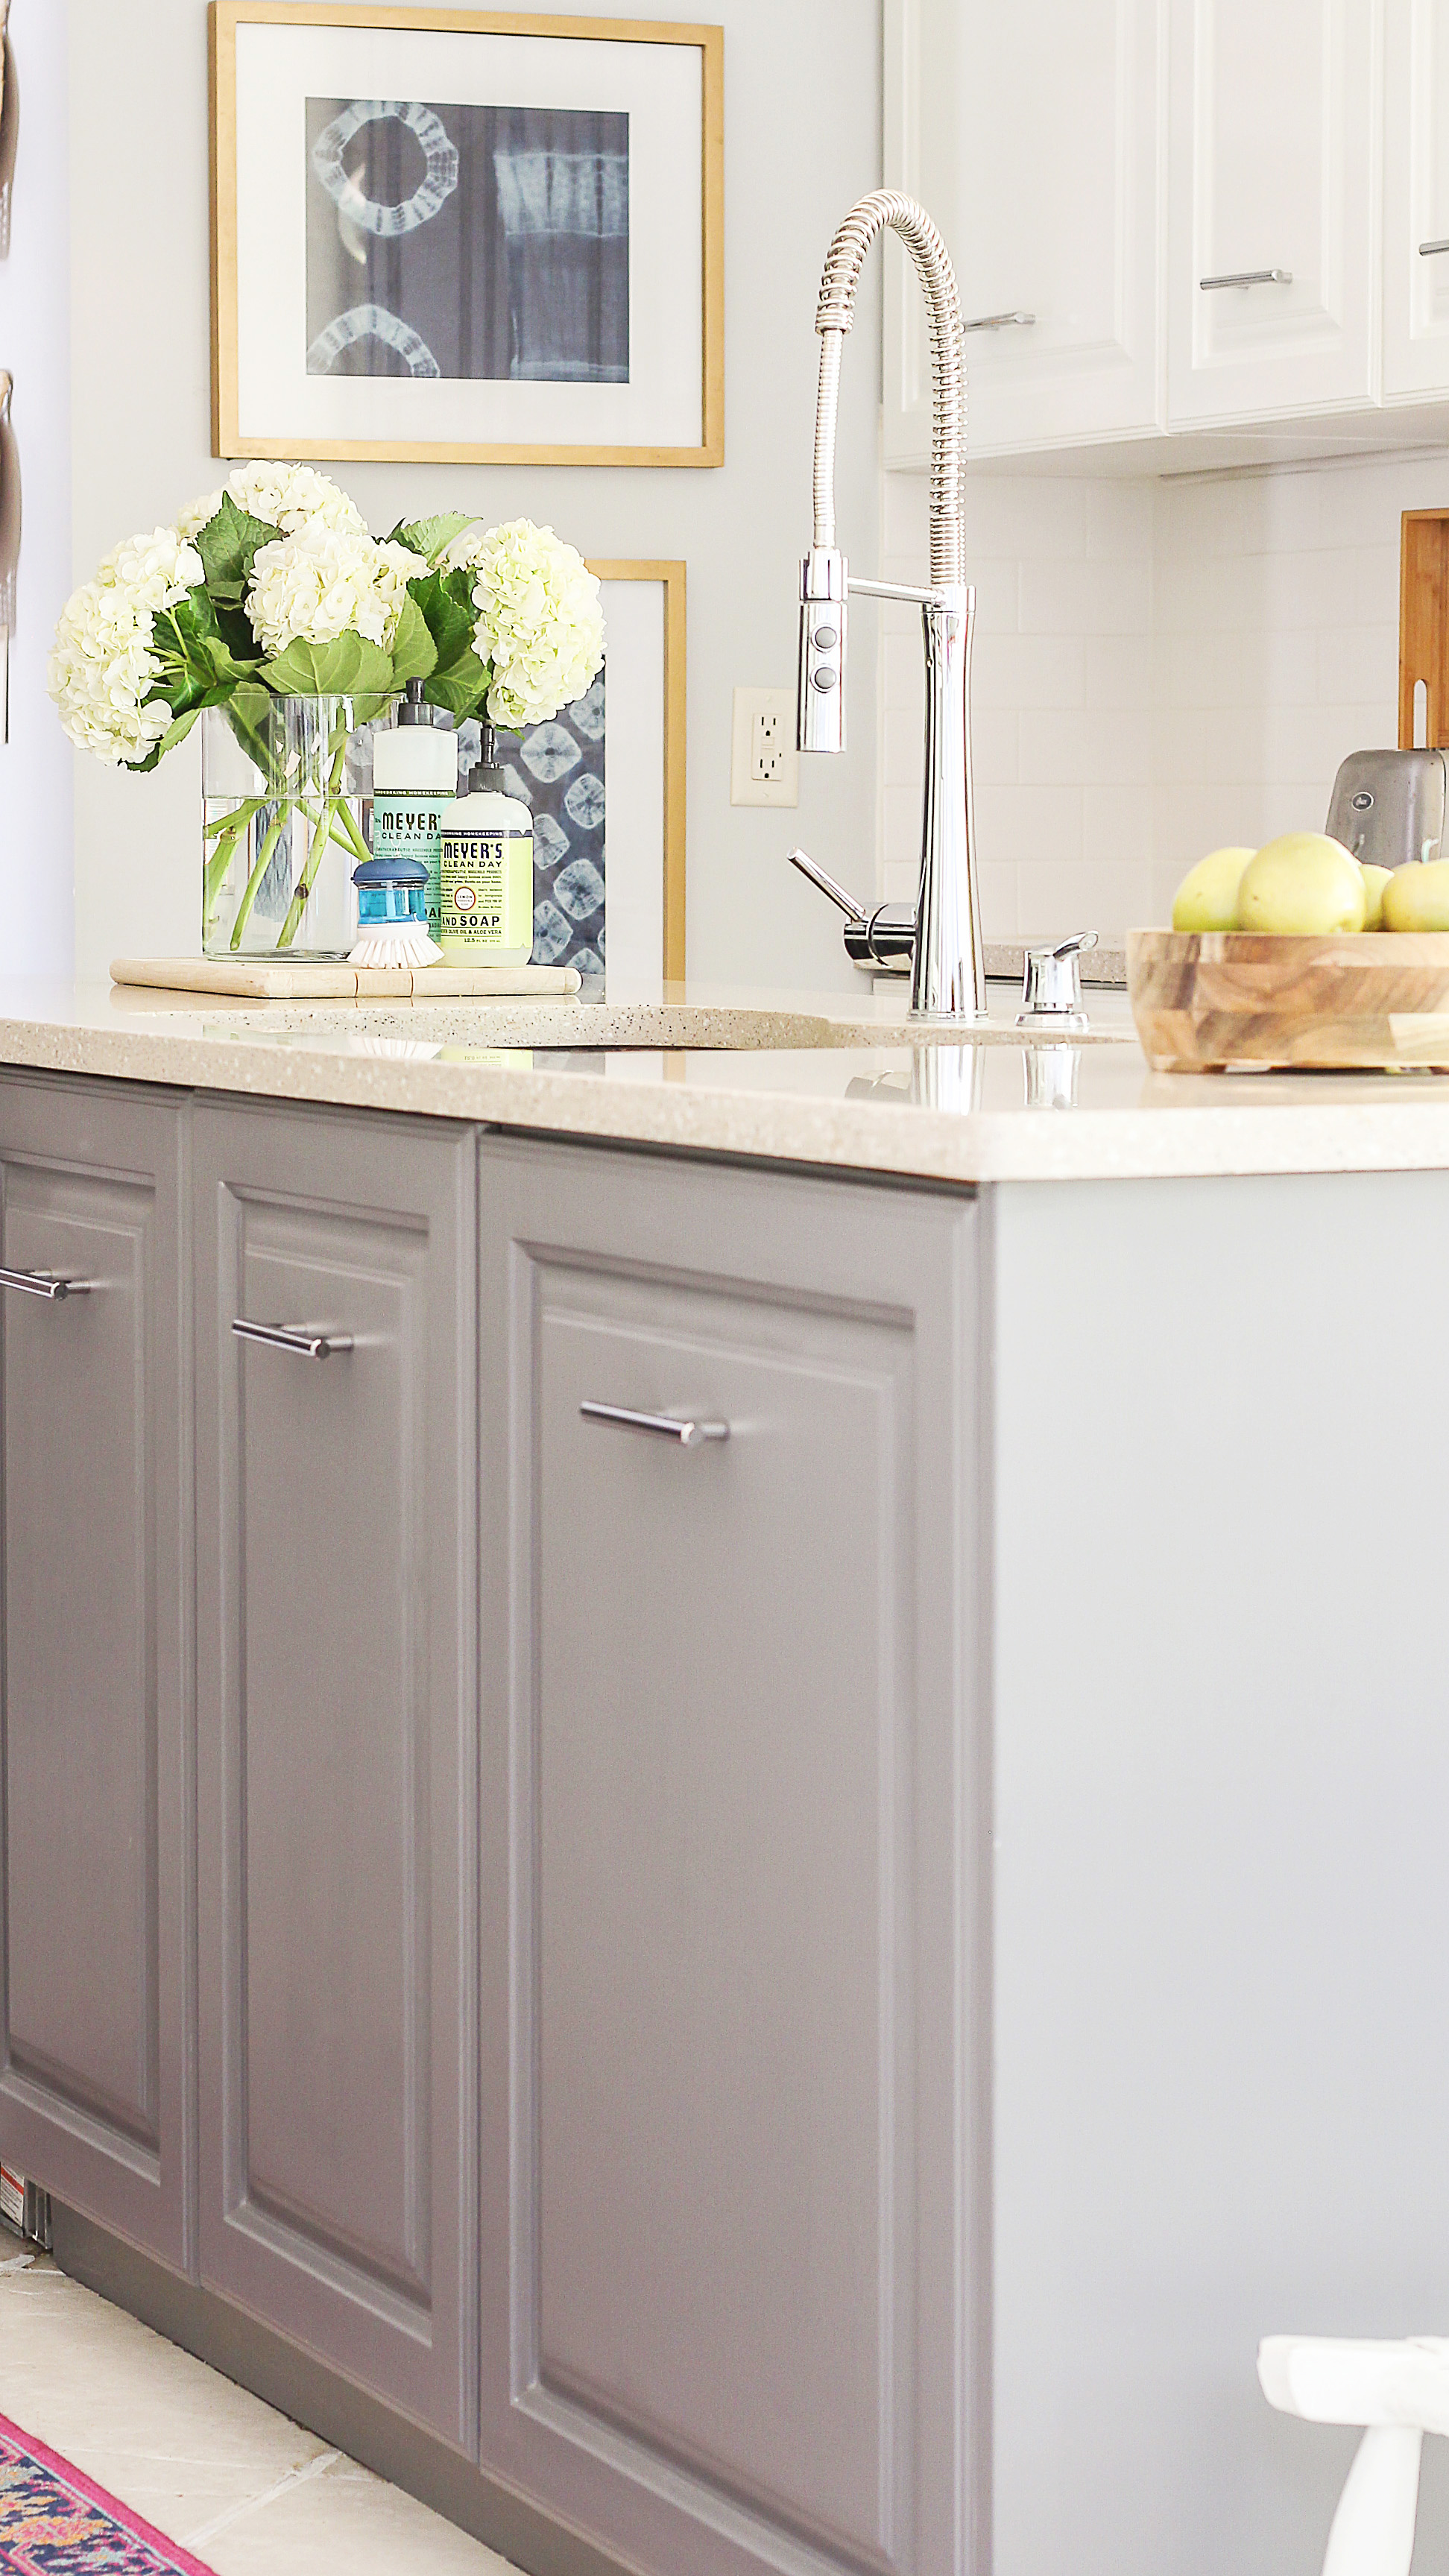 Pleasant A Review Of My Milk Paint Cabinets 6 Month Follow Up Home Interior And Landscaping Ologienasavecom